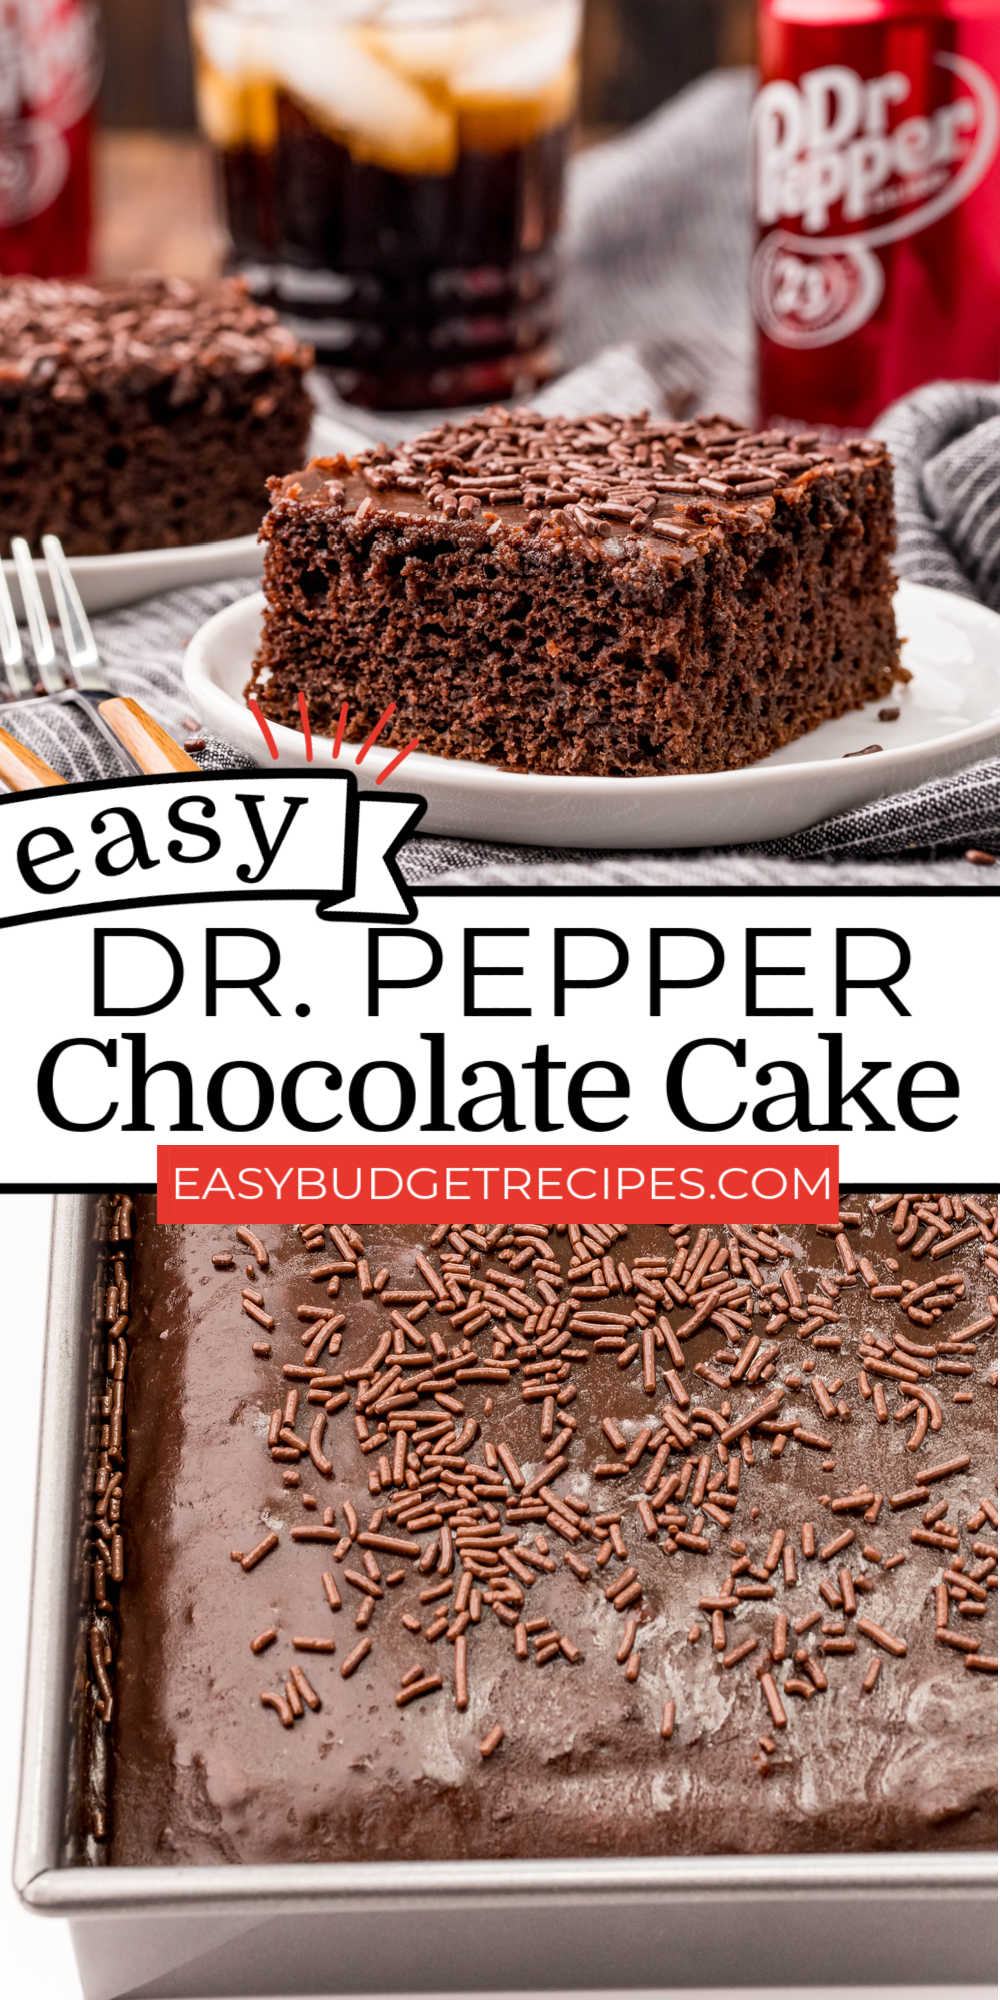 This Dr. Pepper Cake has a light and airy crumb that isn't overly sweet. It's a quick and easy recipe with a simple chocolate fudge frosting that has Dr. Pepper in it, too! via @easybudgetrecipes